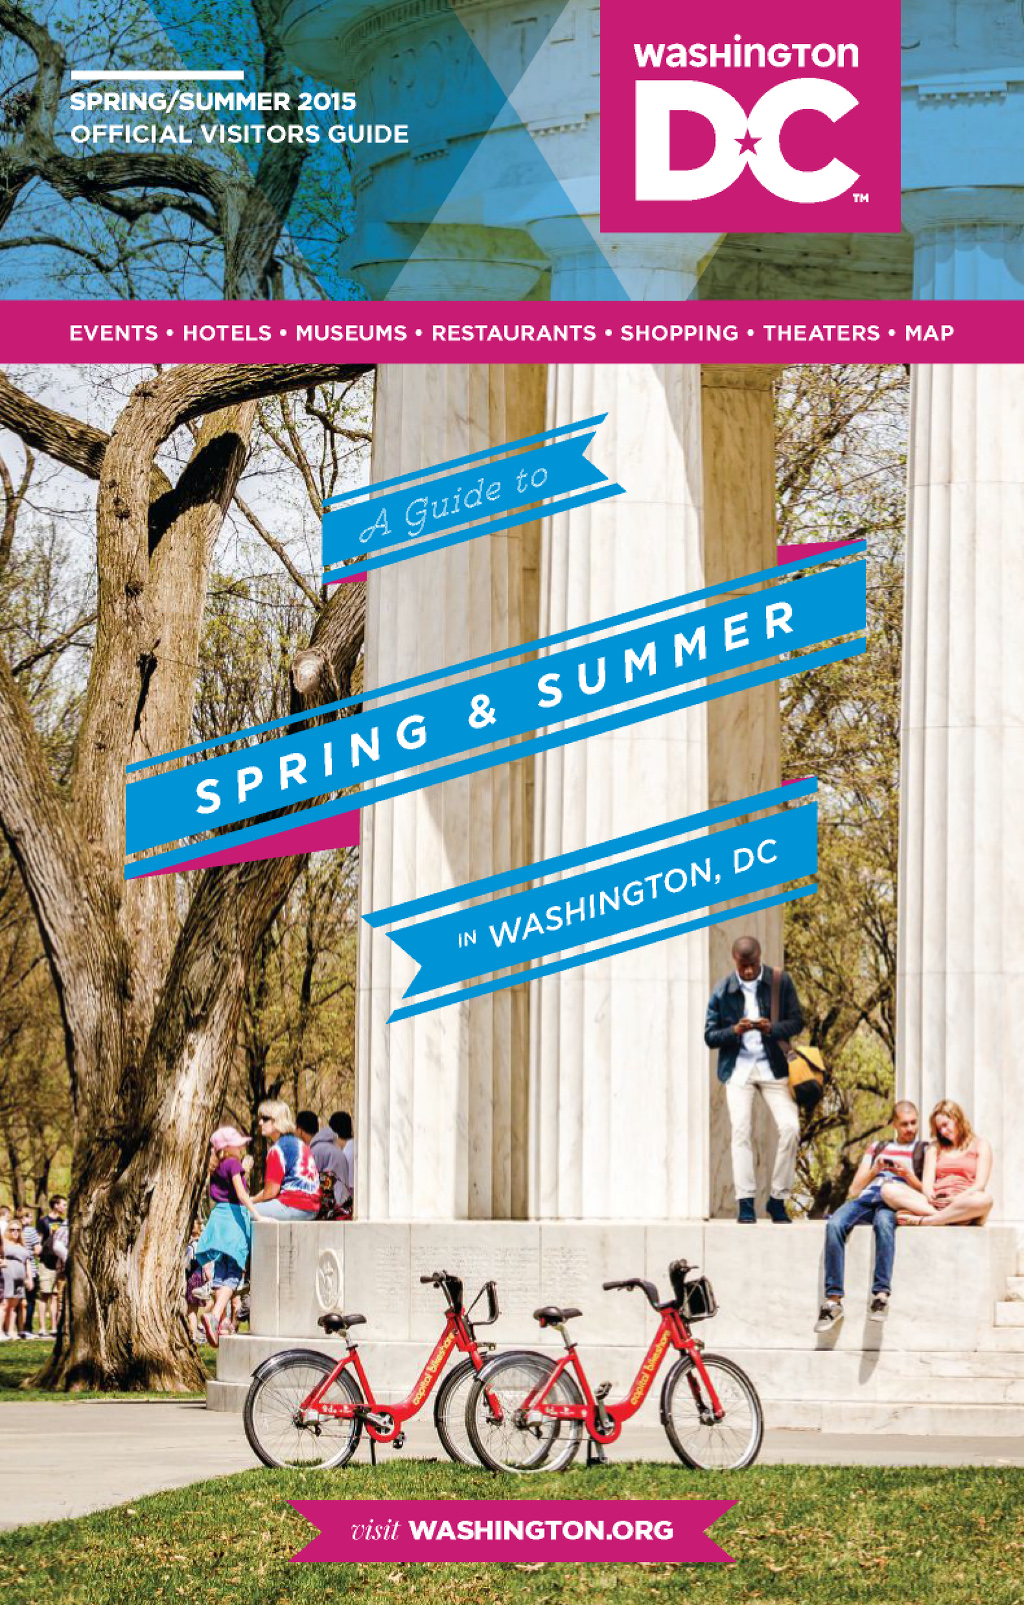 Washington DC Official Visitors Guide Spring/Summer